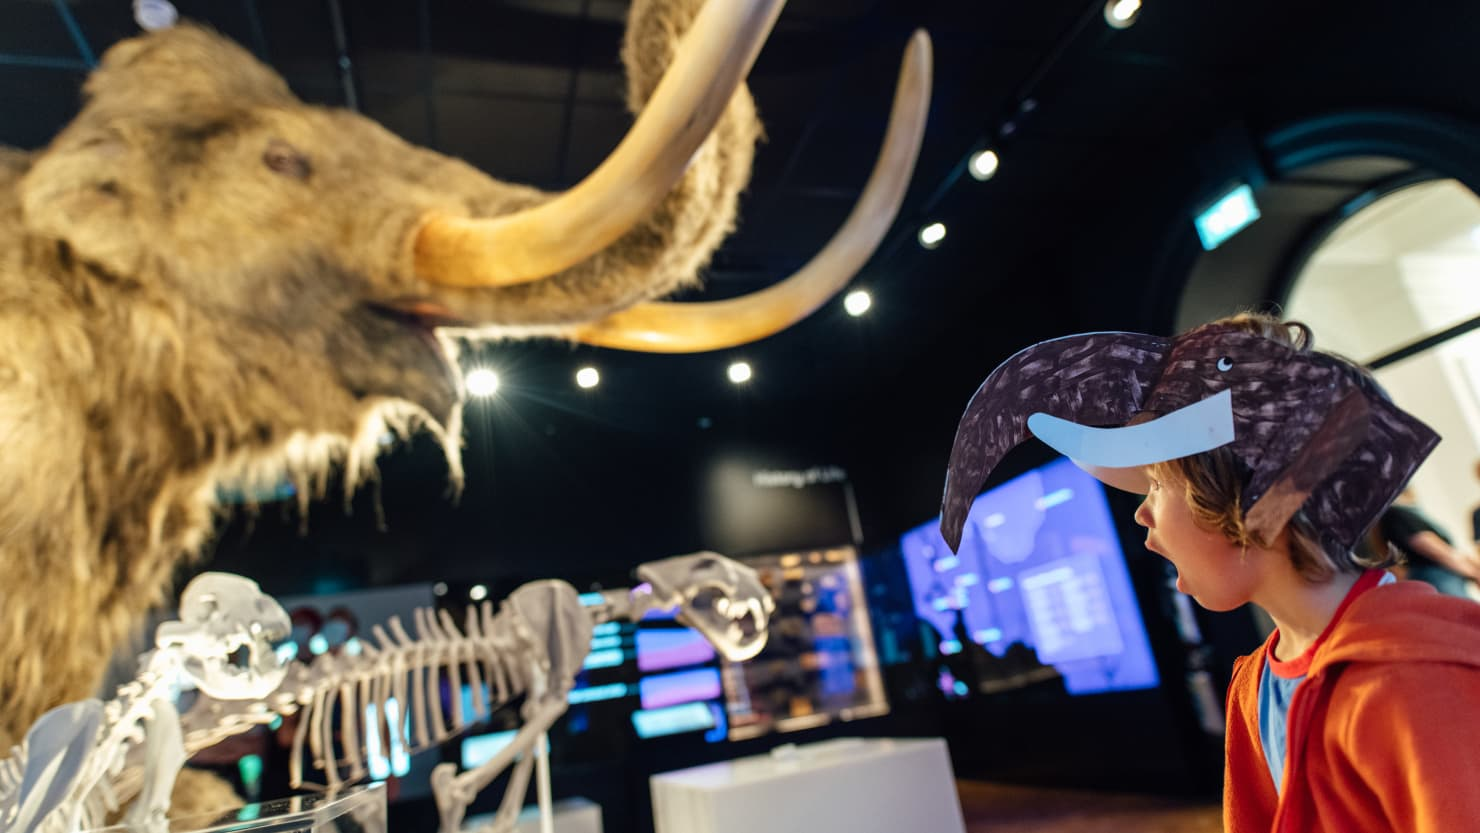 Boy looking in amazement at a woolly mammoth model